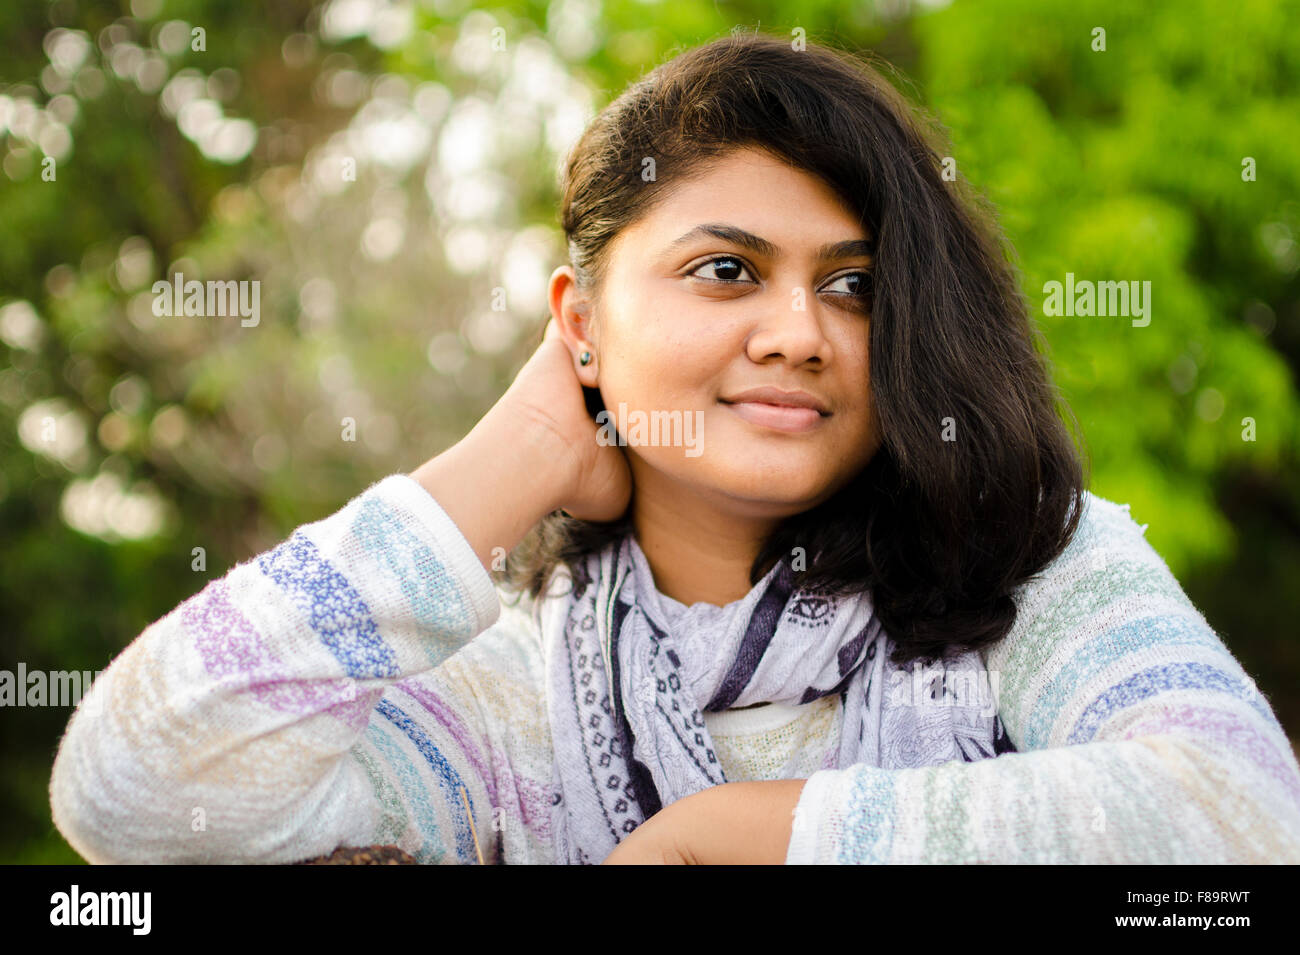 chubby indian girl stock photos & chubby indian girl stock images